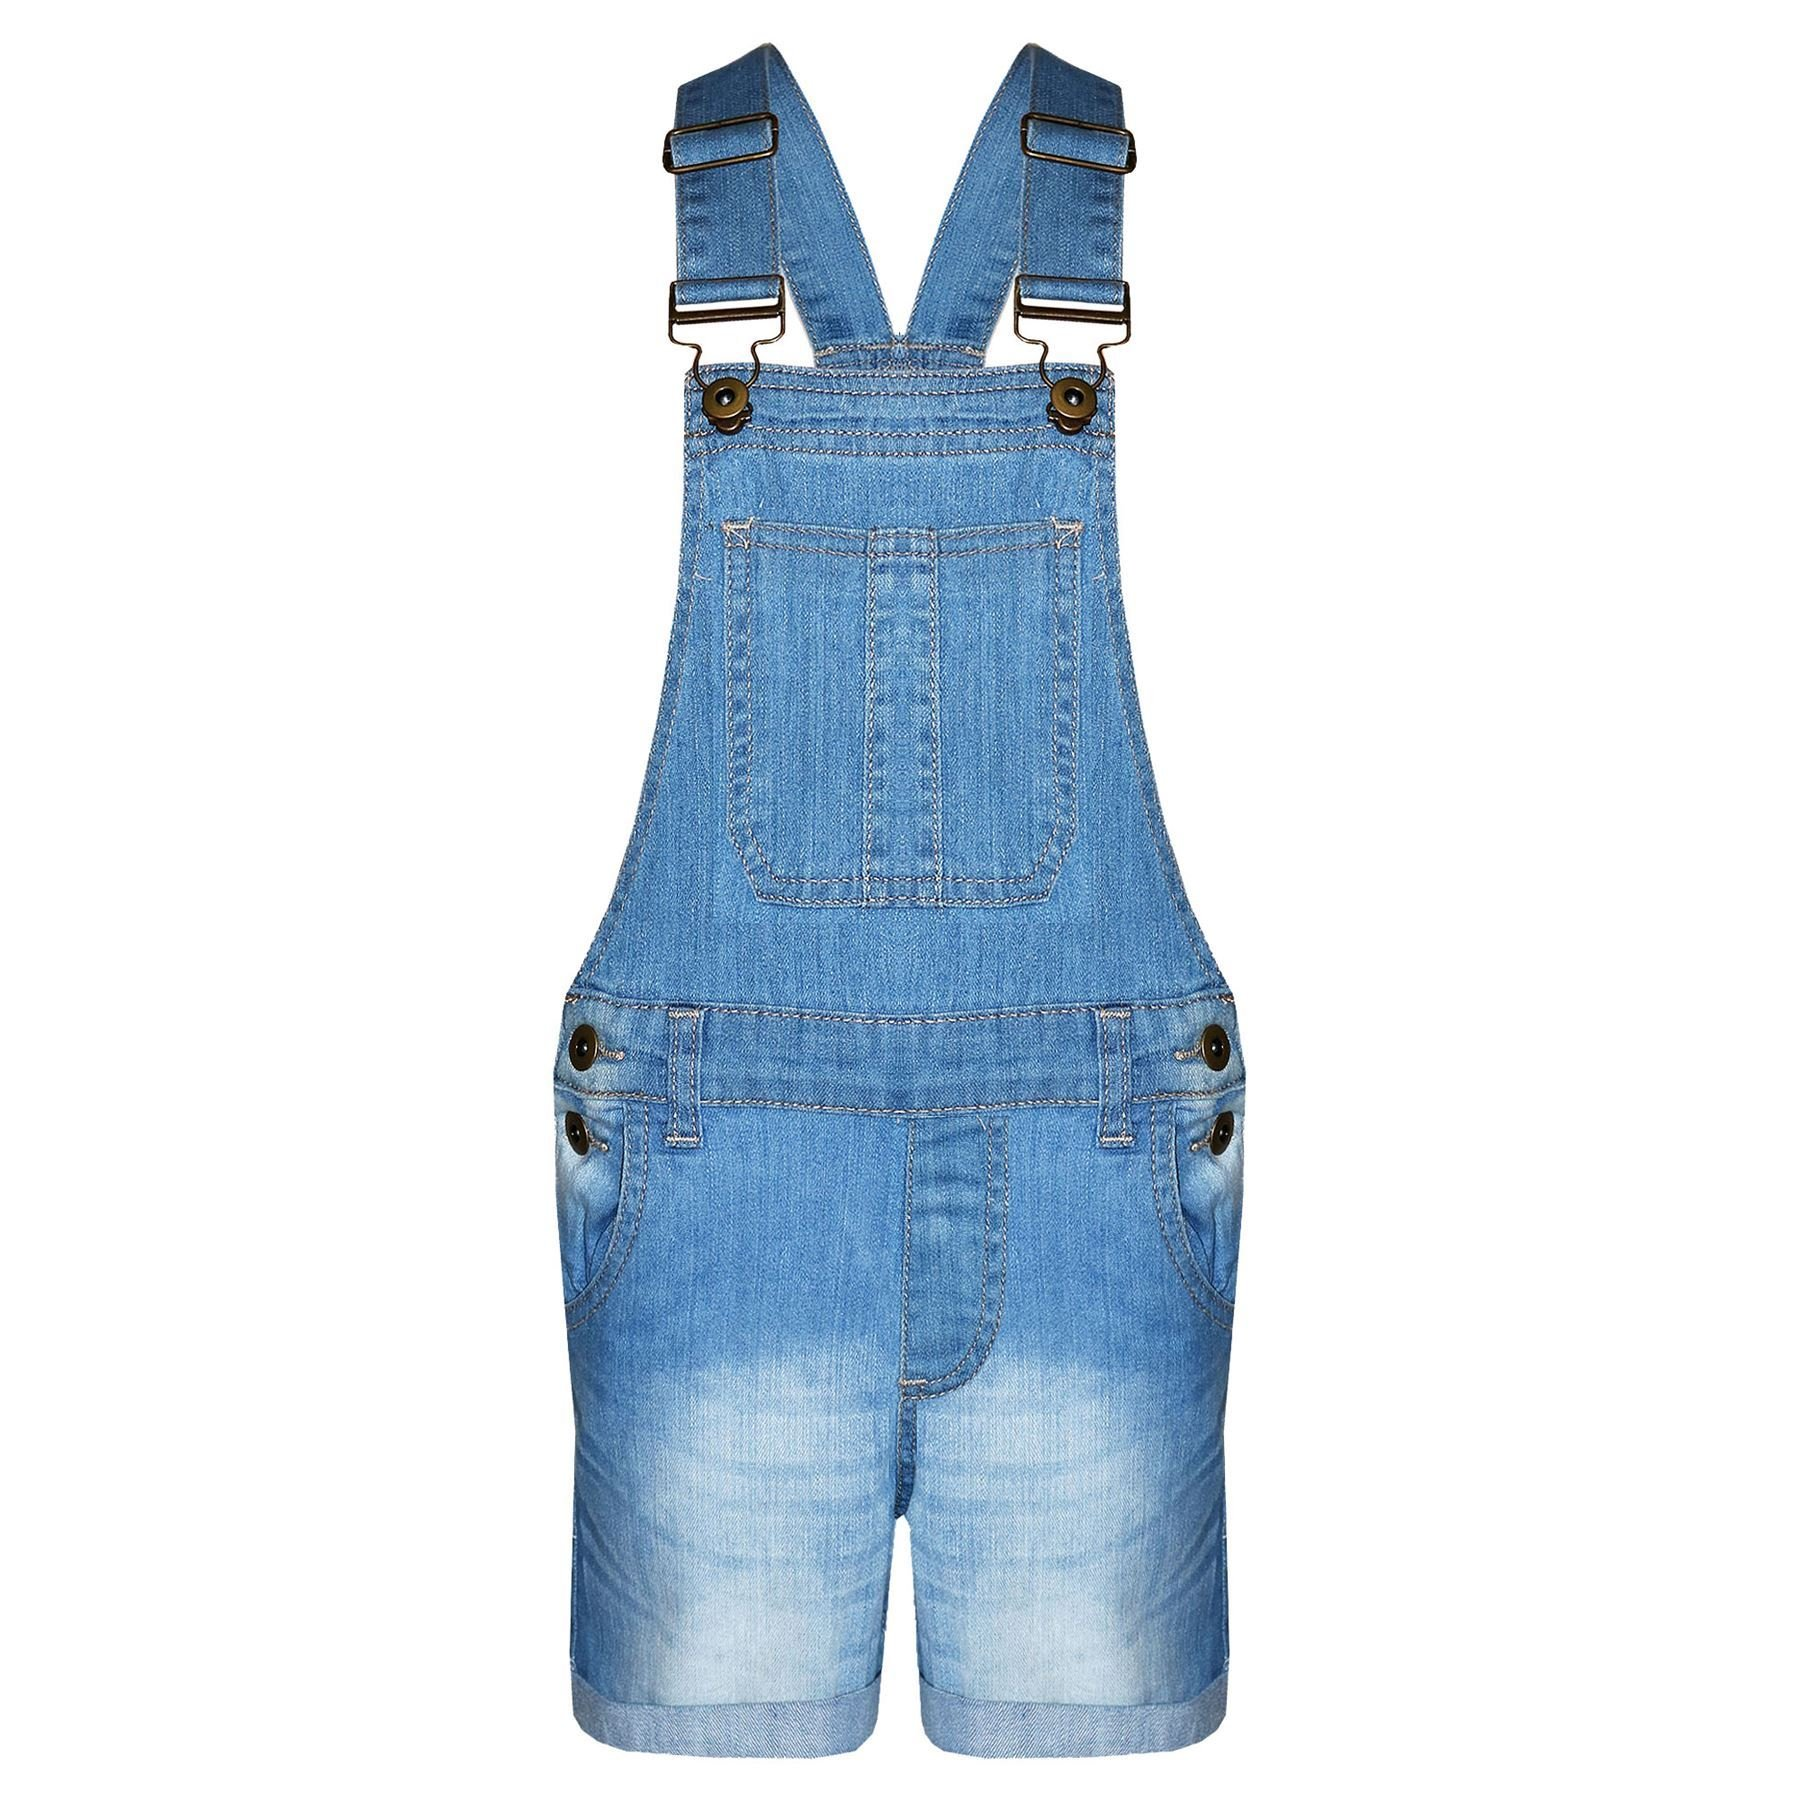 A2Z 4 Kids Girls Denim Stretch Dungaree Shorts Jumpsuit Playsuit All in One